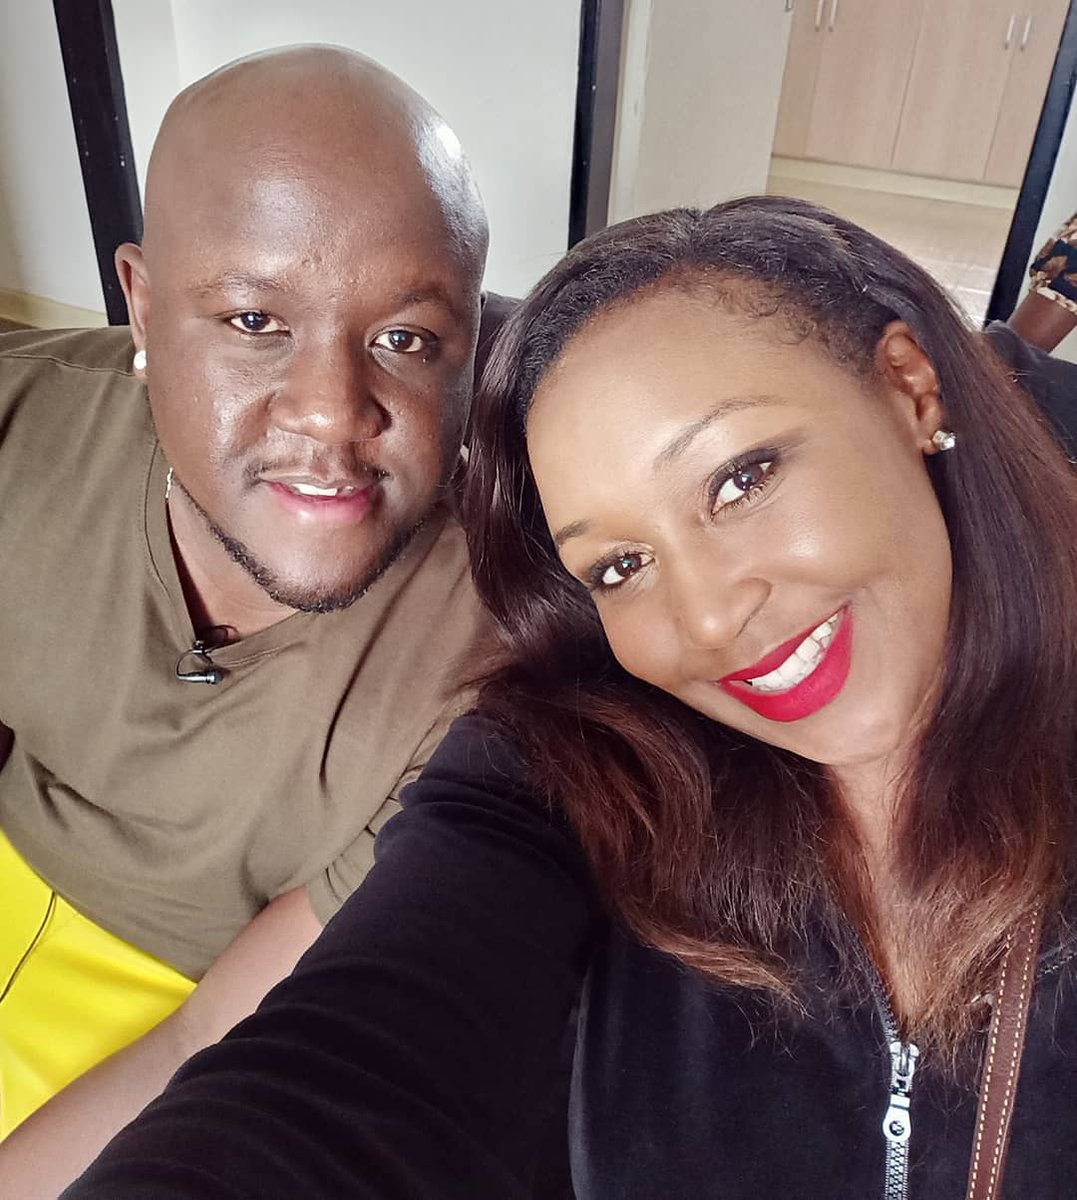 #WeekendWithBetty on our favorite channel @K24Tv with our News anchor @BettyMKyallo as She bring #Upclose with @DjJoeMfalme mwenyewe ndaani y Upclose.. Betty's your show is untouchable & unstoppable..Always smart ladies & smiles.. Keep inspiring us with Every guests